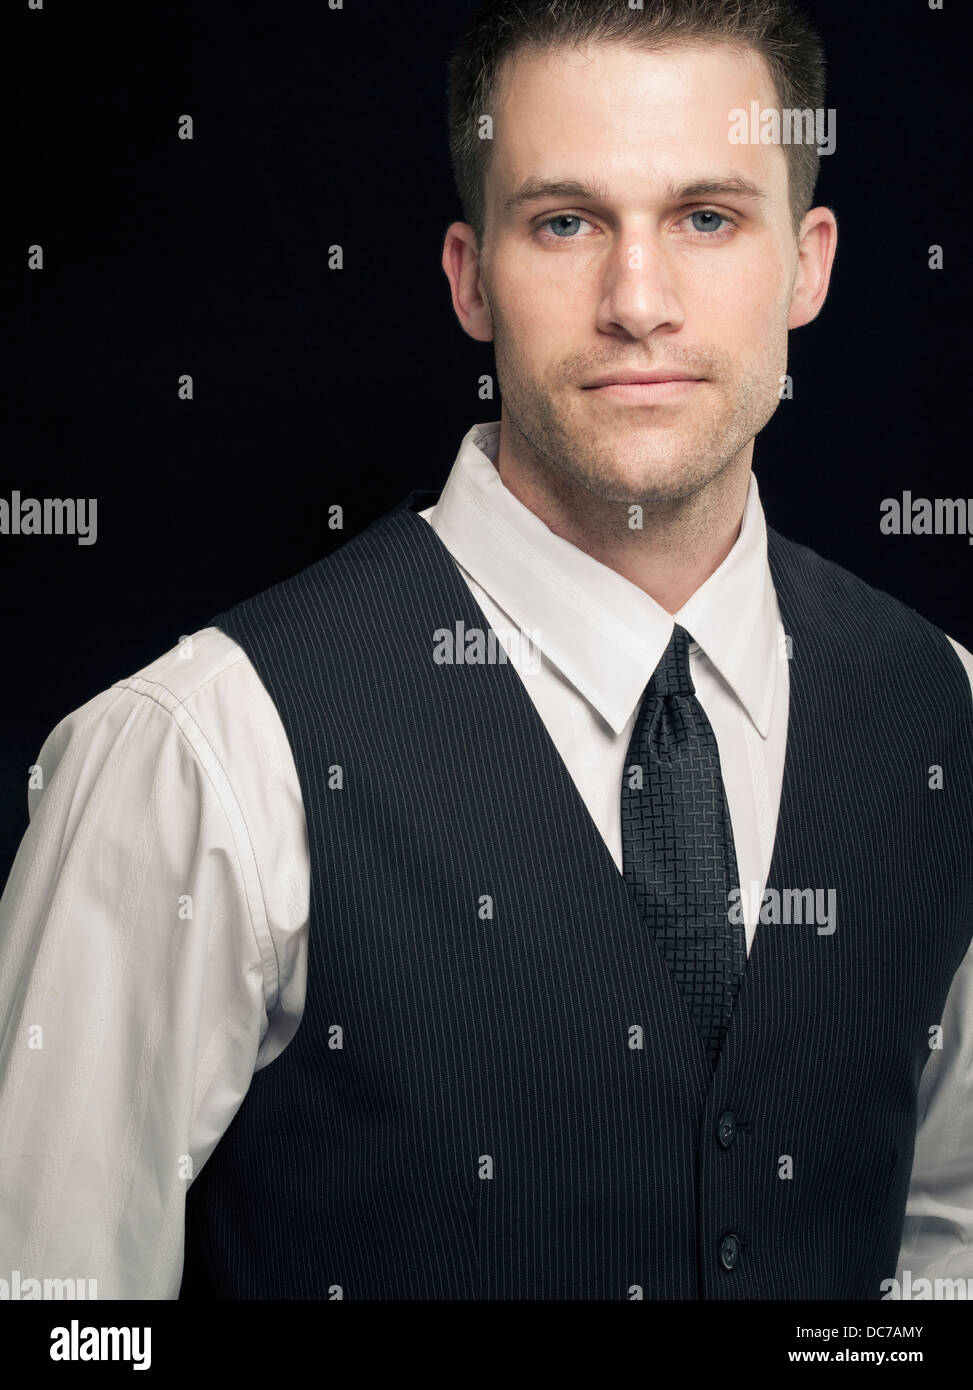 Young businessman white shirt, waistcoat and tie - Stock Image